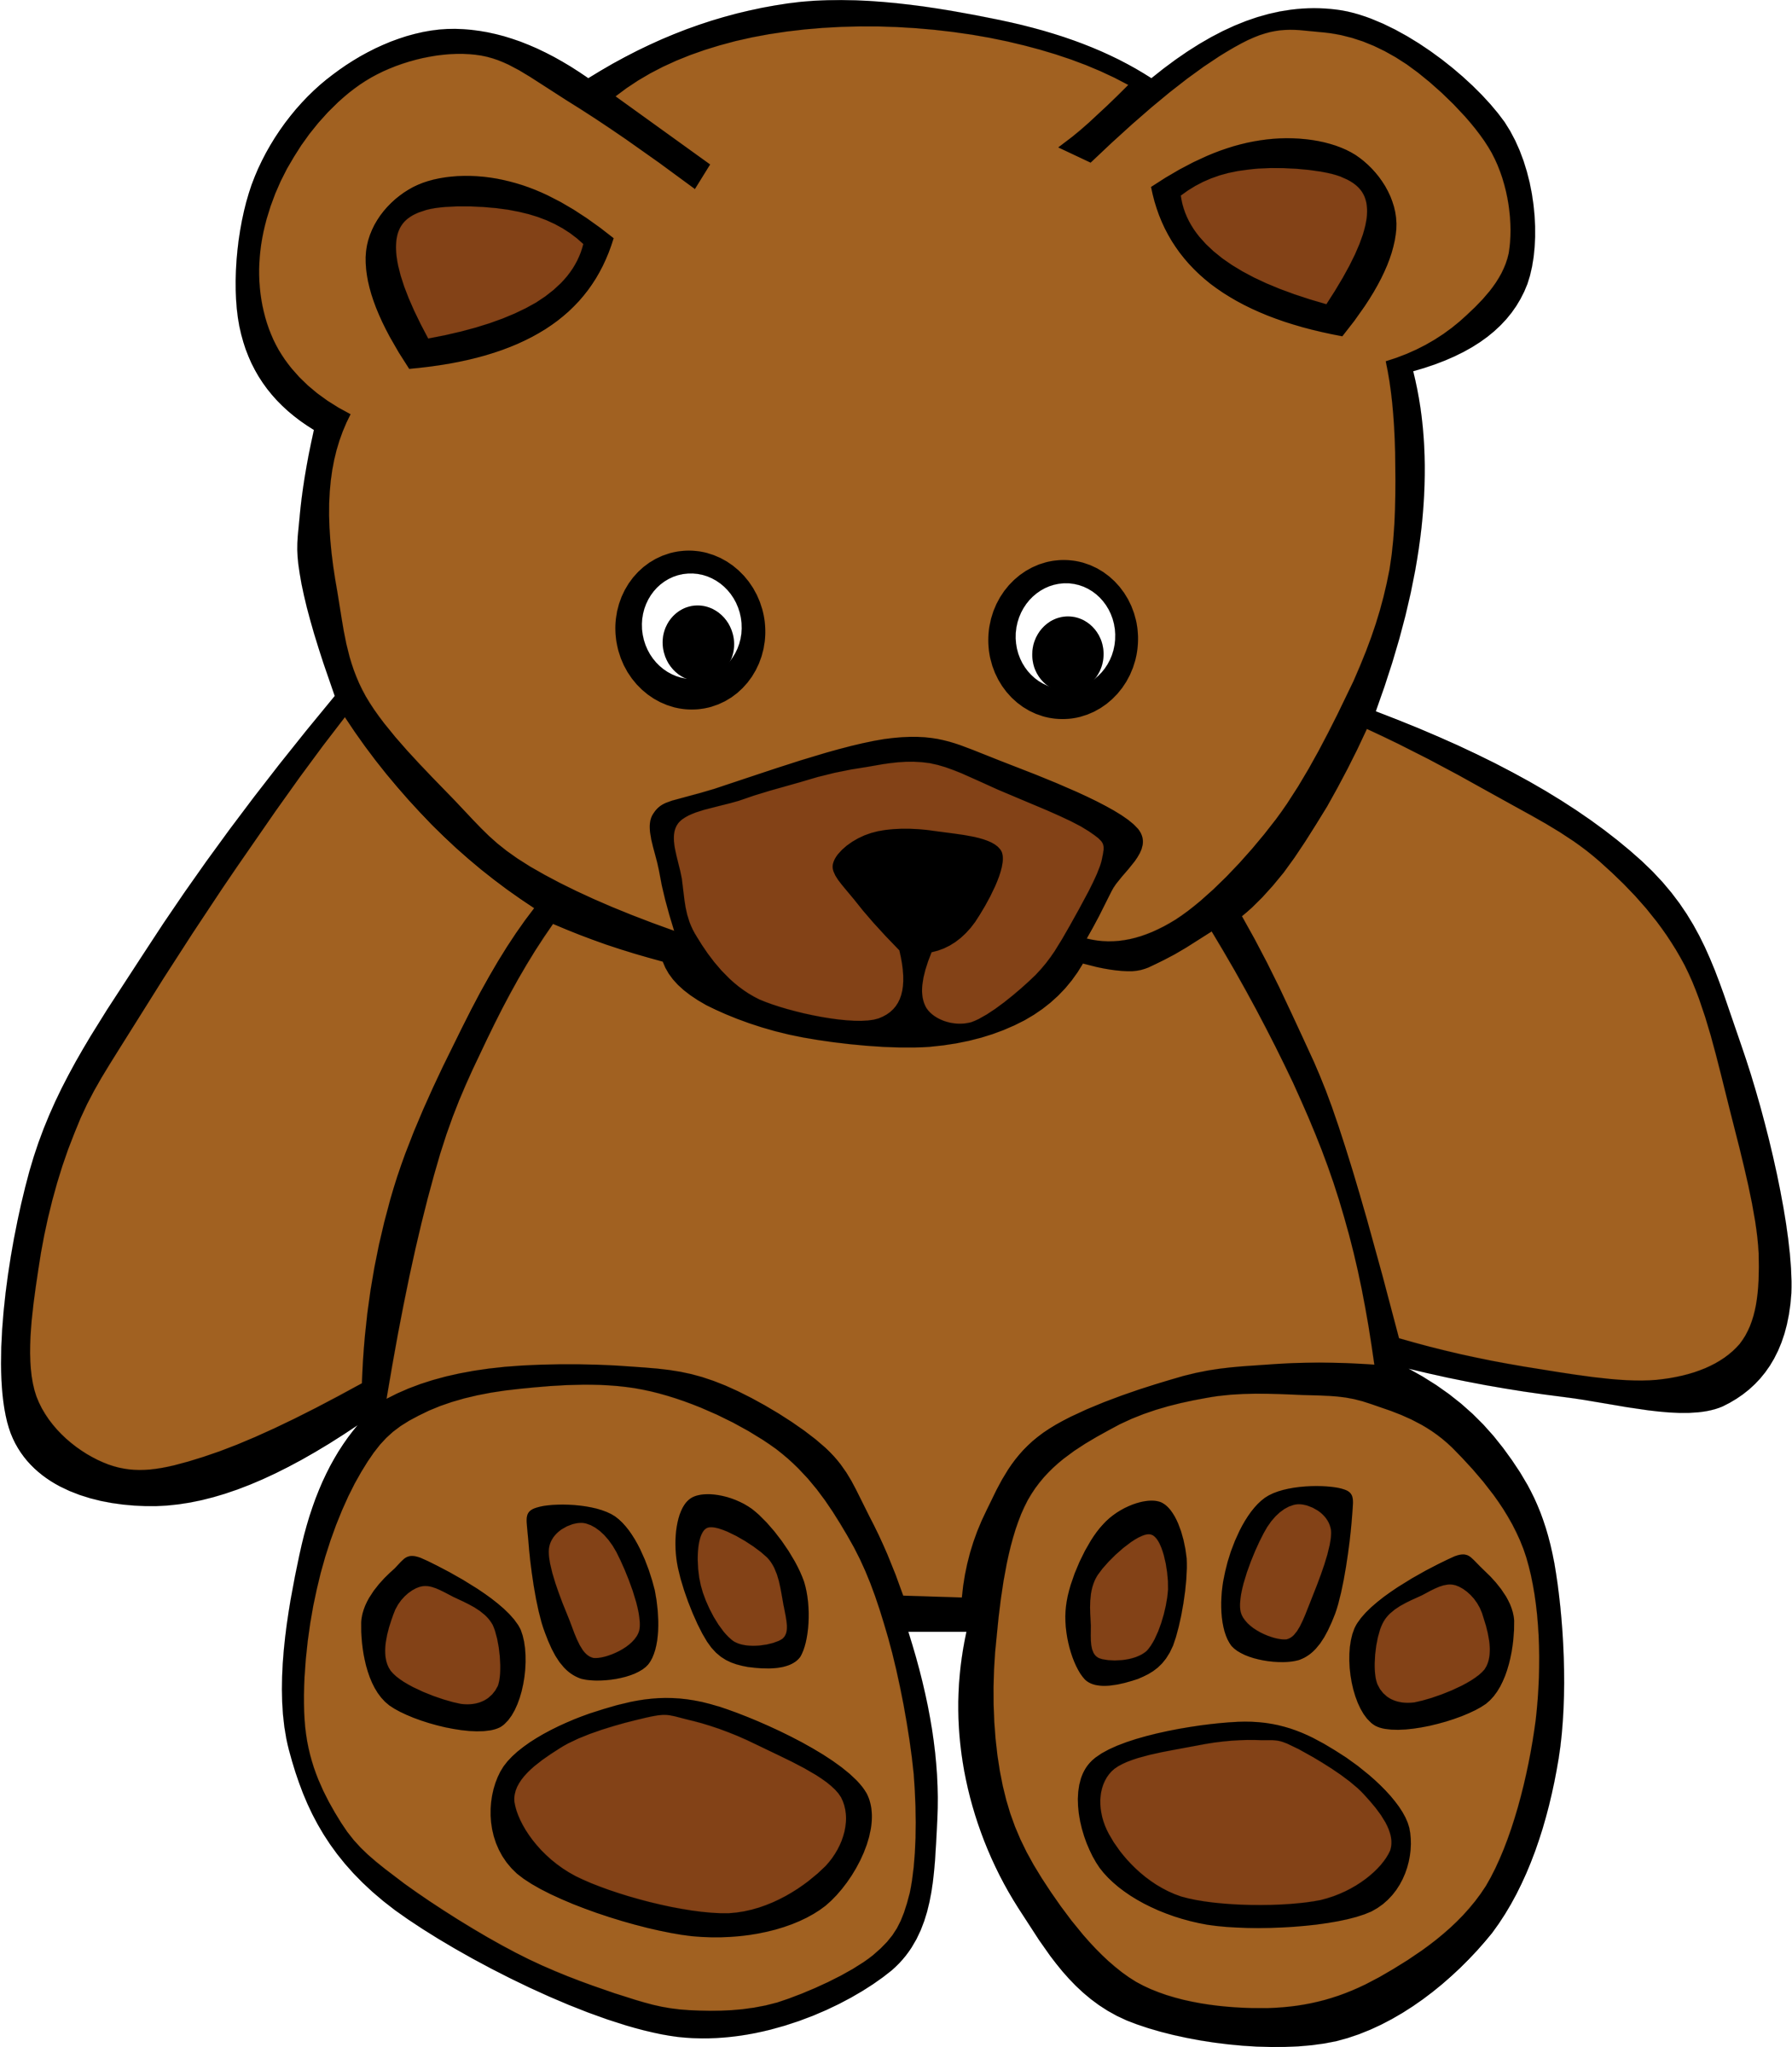 Clipart teddy big image. Bear clip art simple graphic free